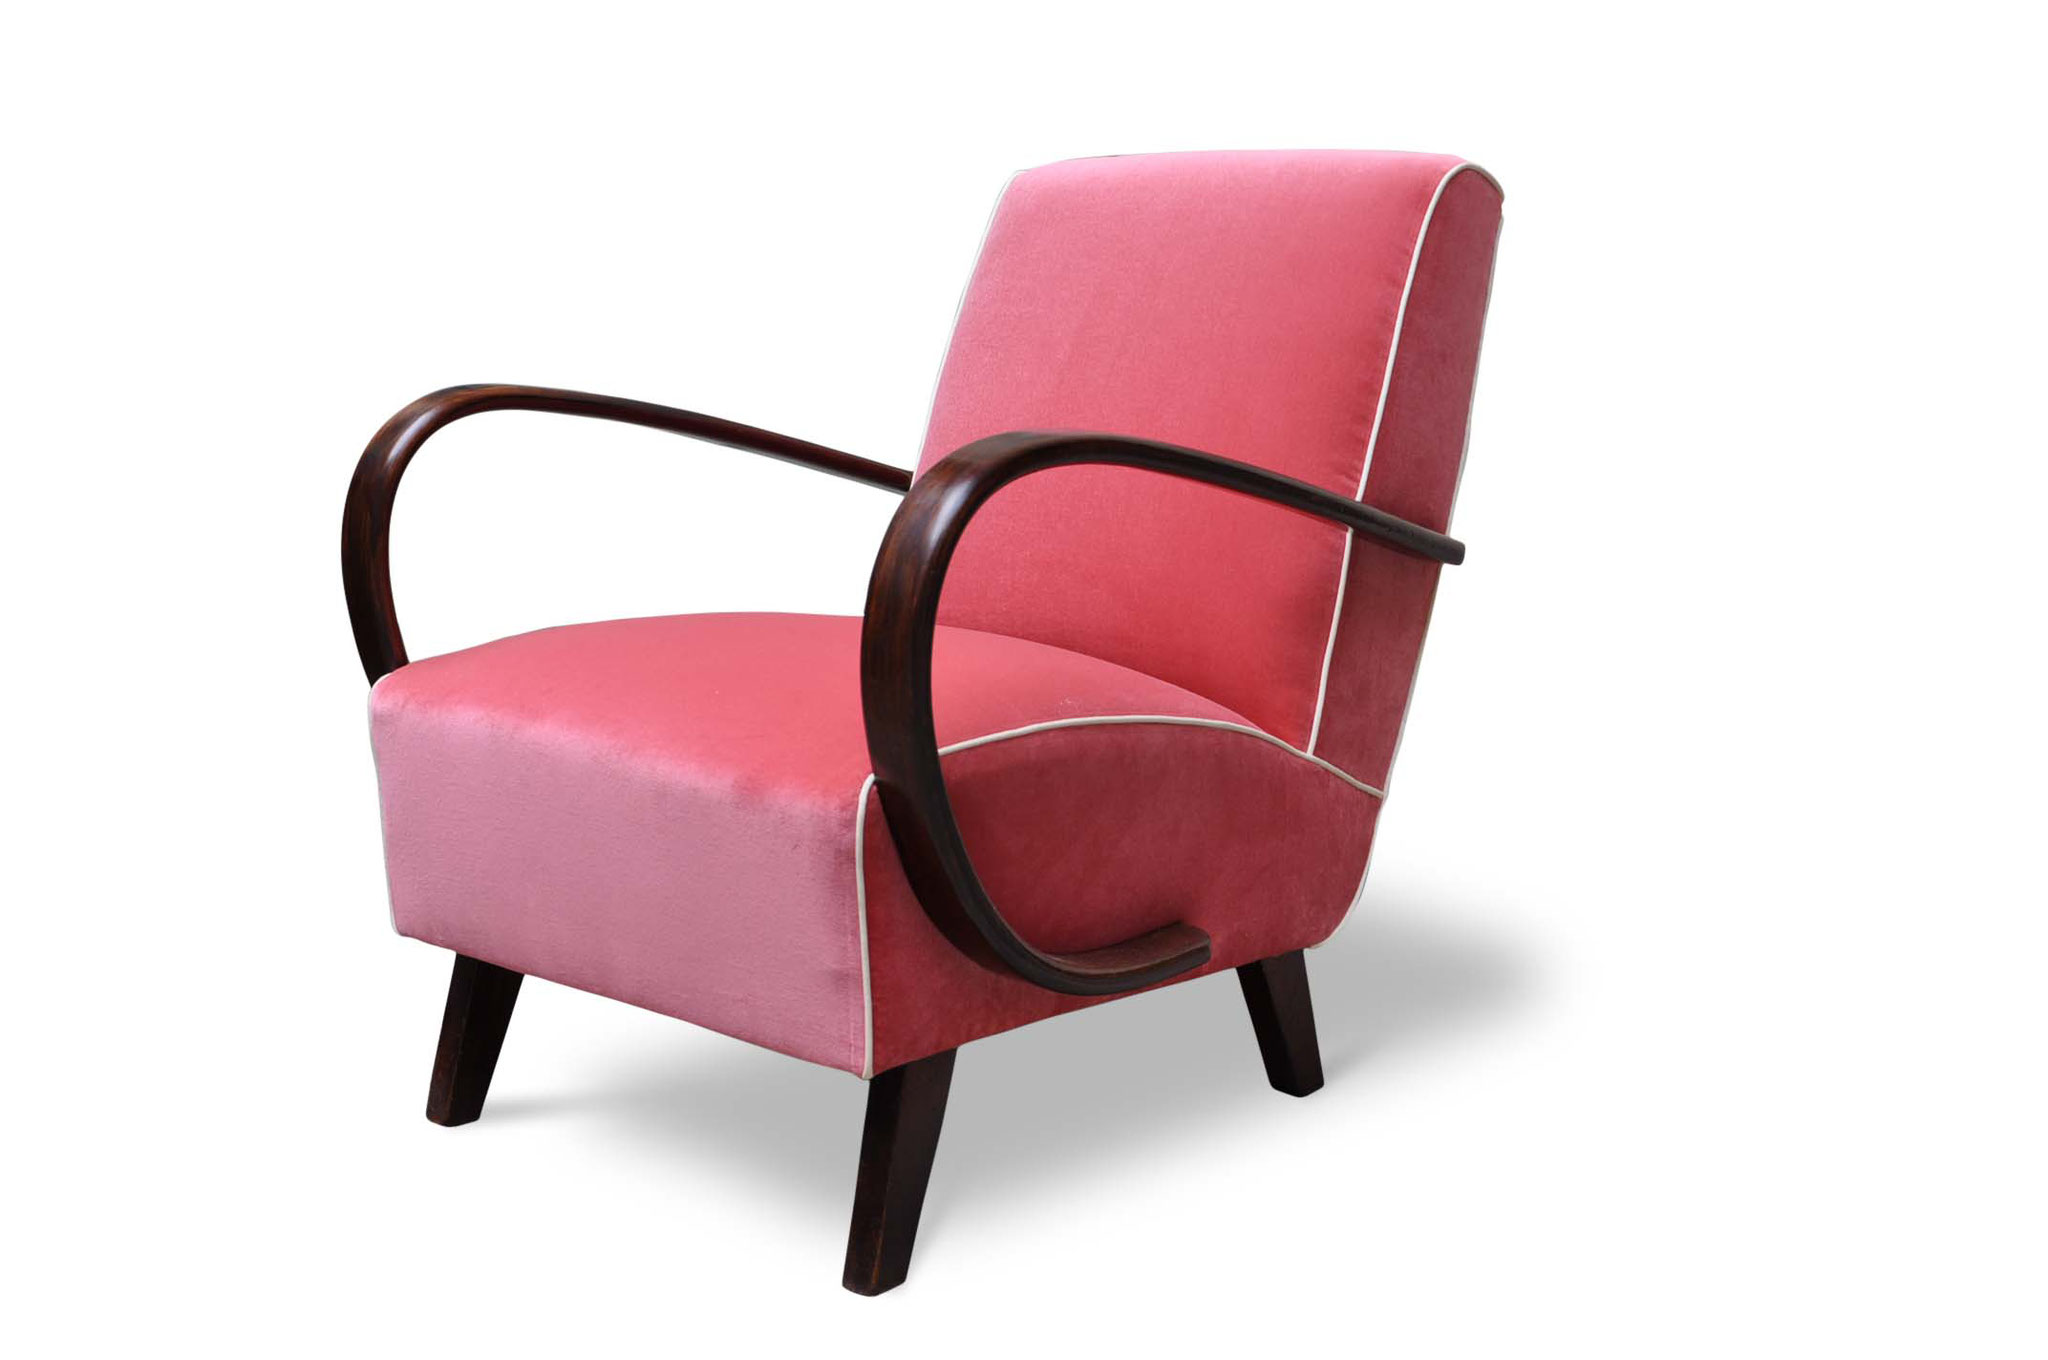 art deco chair in rose cotton velvet